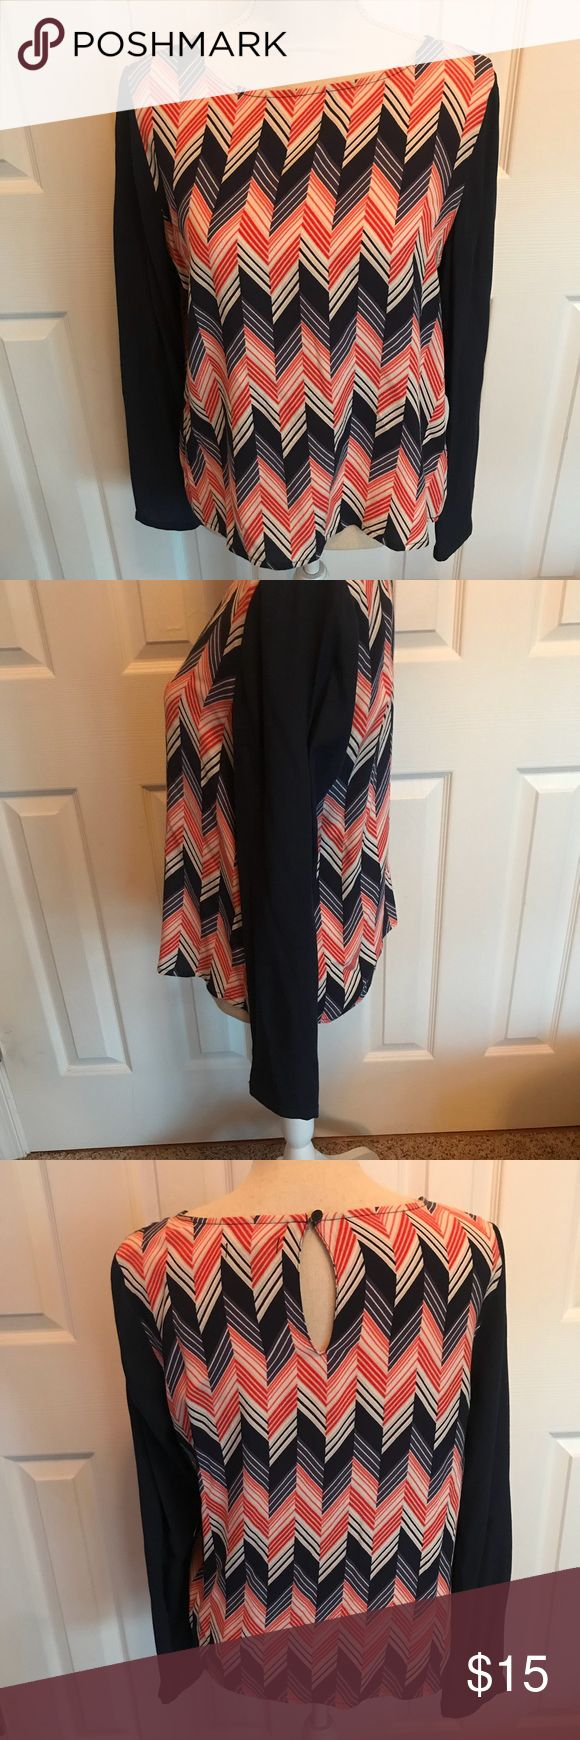 Gap Chevron Top Sz Small Super cute Top from The Gap in EUC! Chevron orange, white and navy blue pattern. Navy blue long sleeves. Key hole cut out in back. Size small. GAP Tops